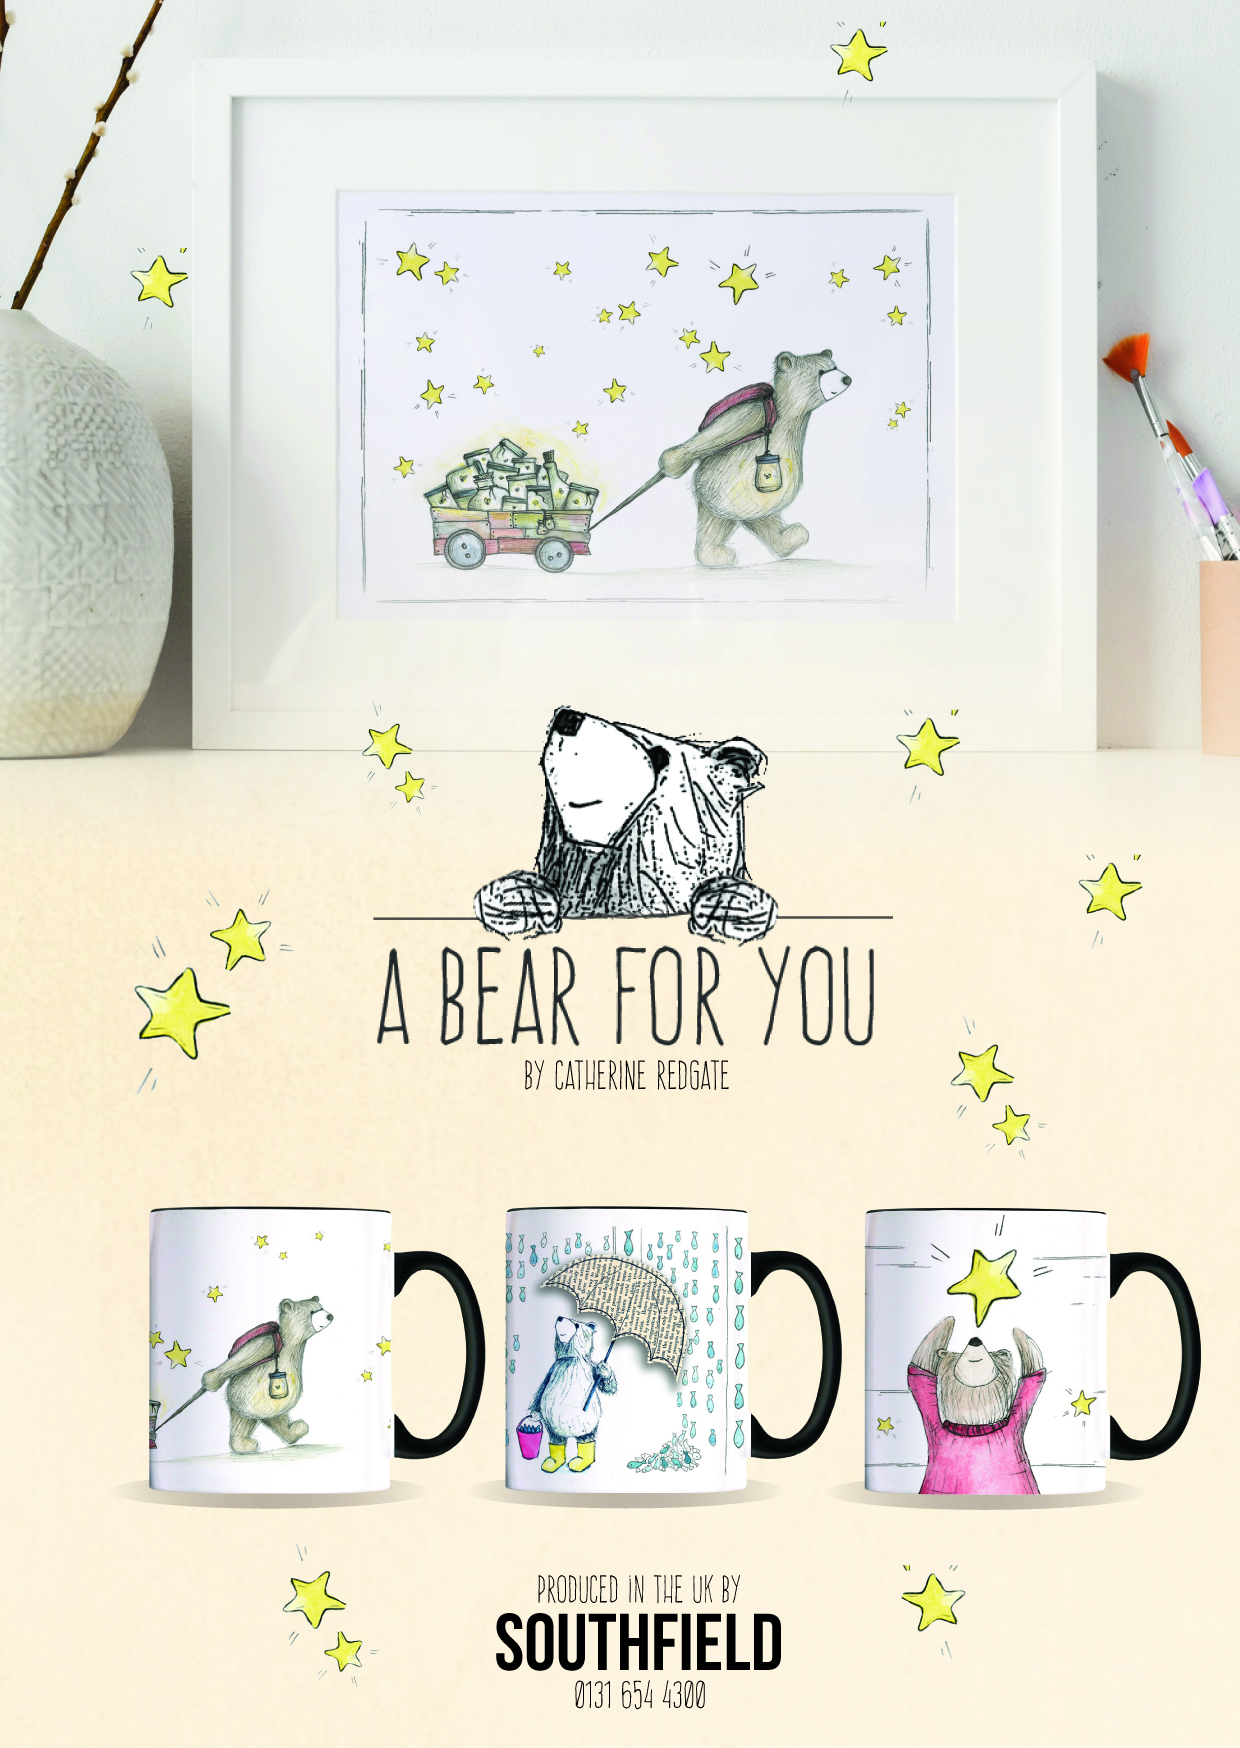 A BEAR FOR YOU Catalogue